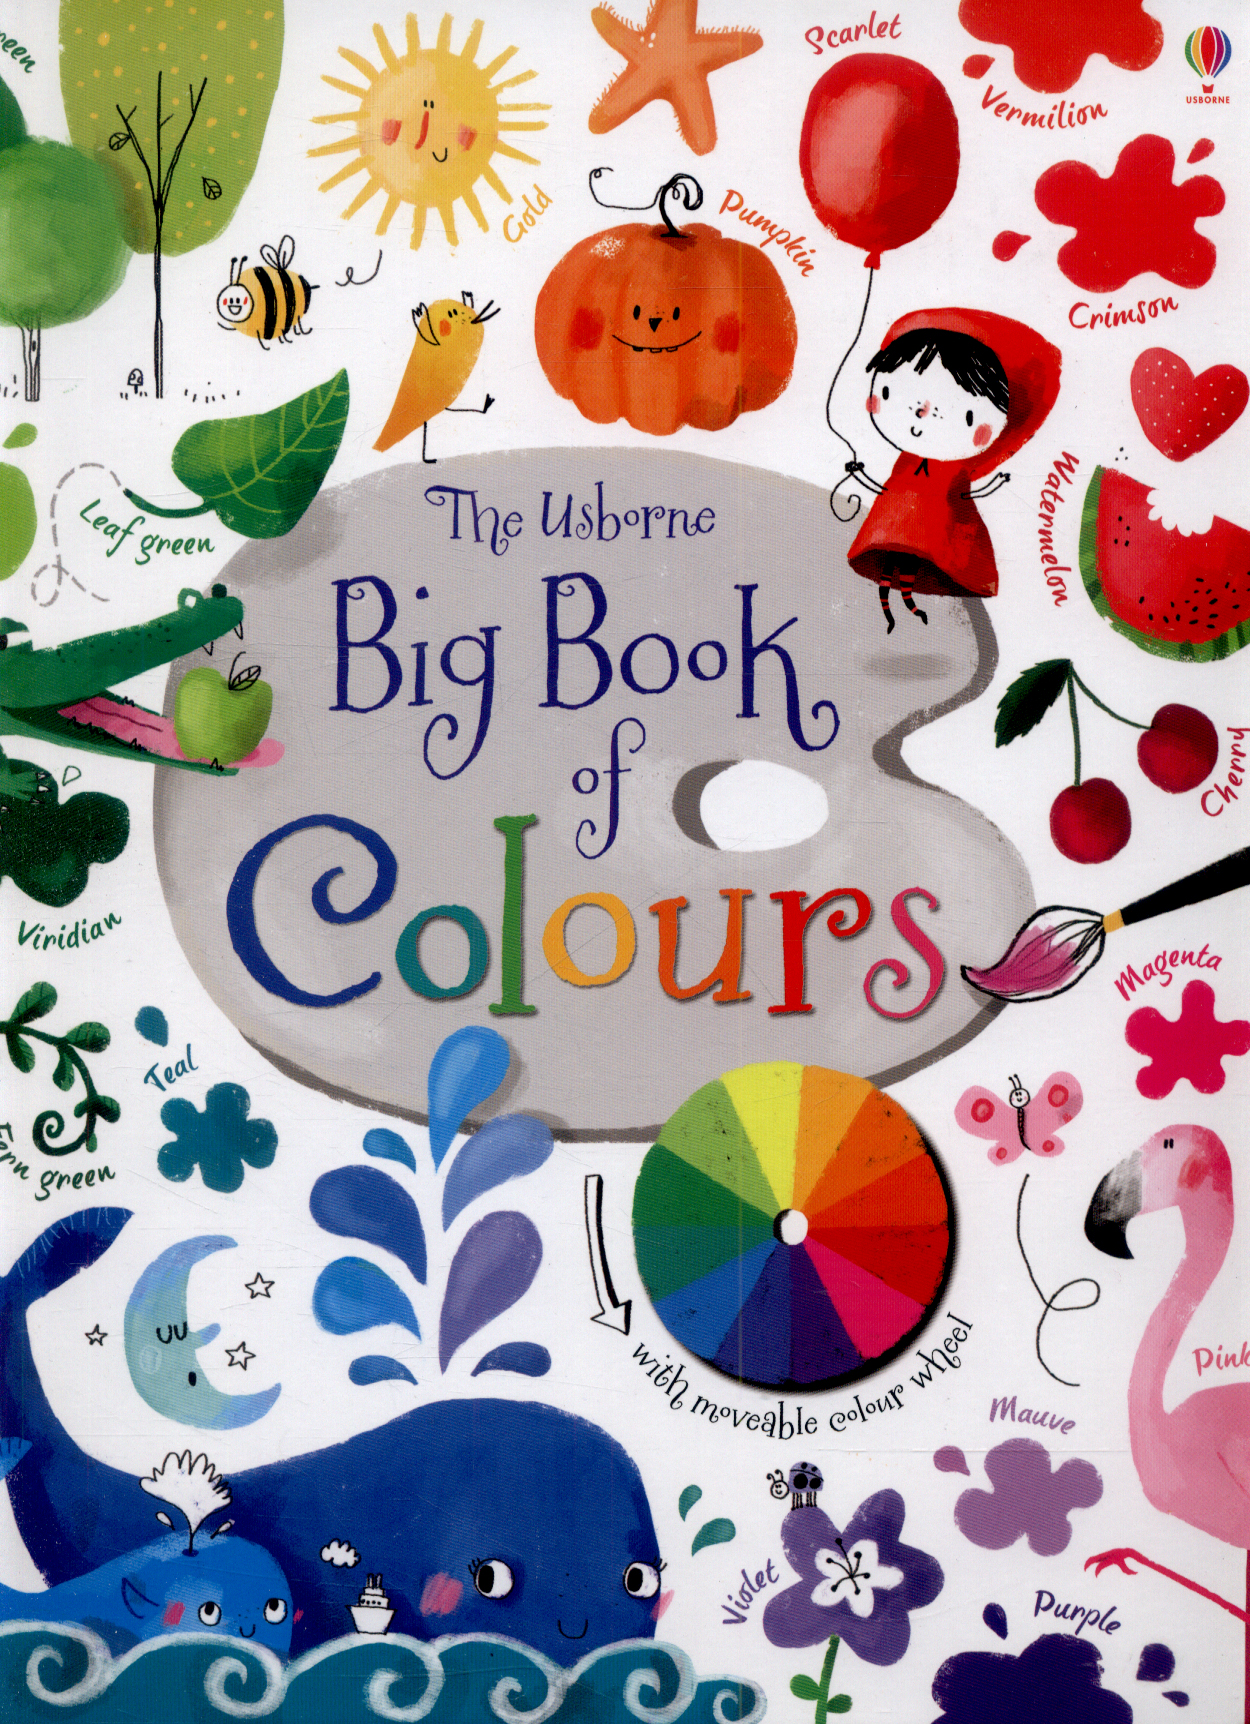 Colour book bands ks1 - The Usborne Big Book Of Colours